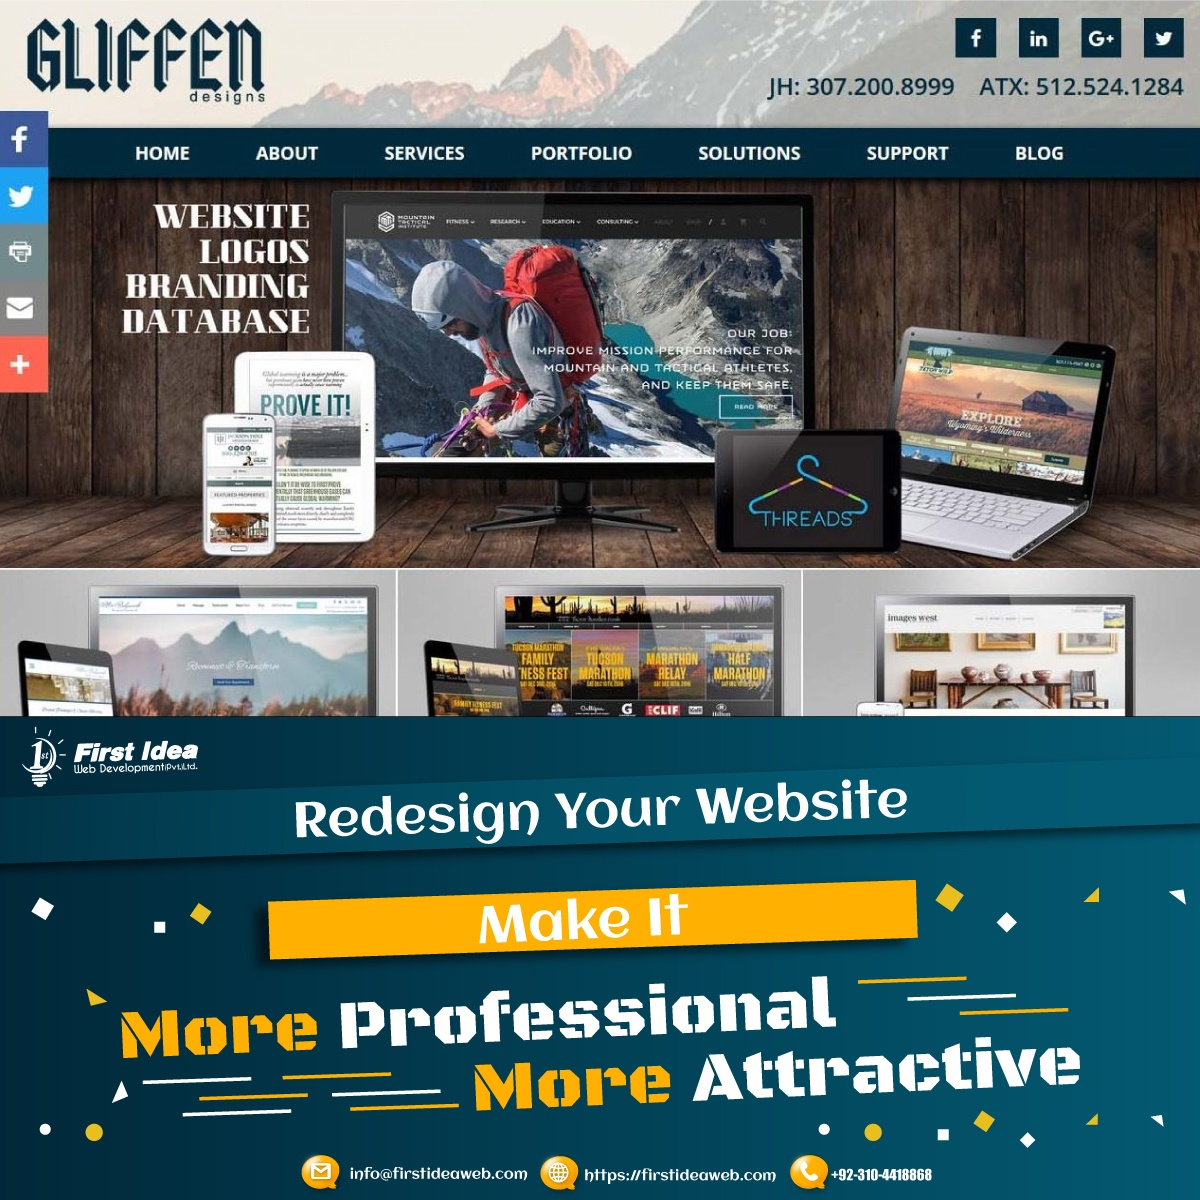 website redesign services, redesign your website, website redesign company, personal web design